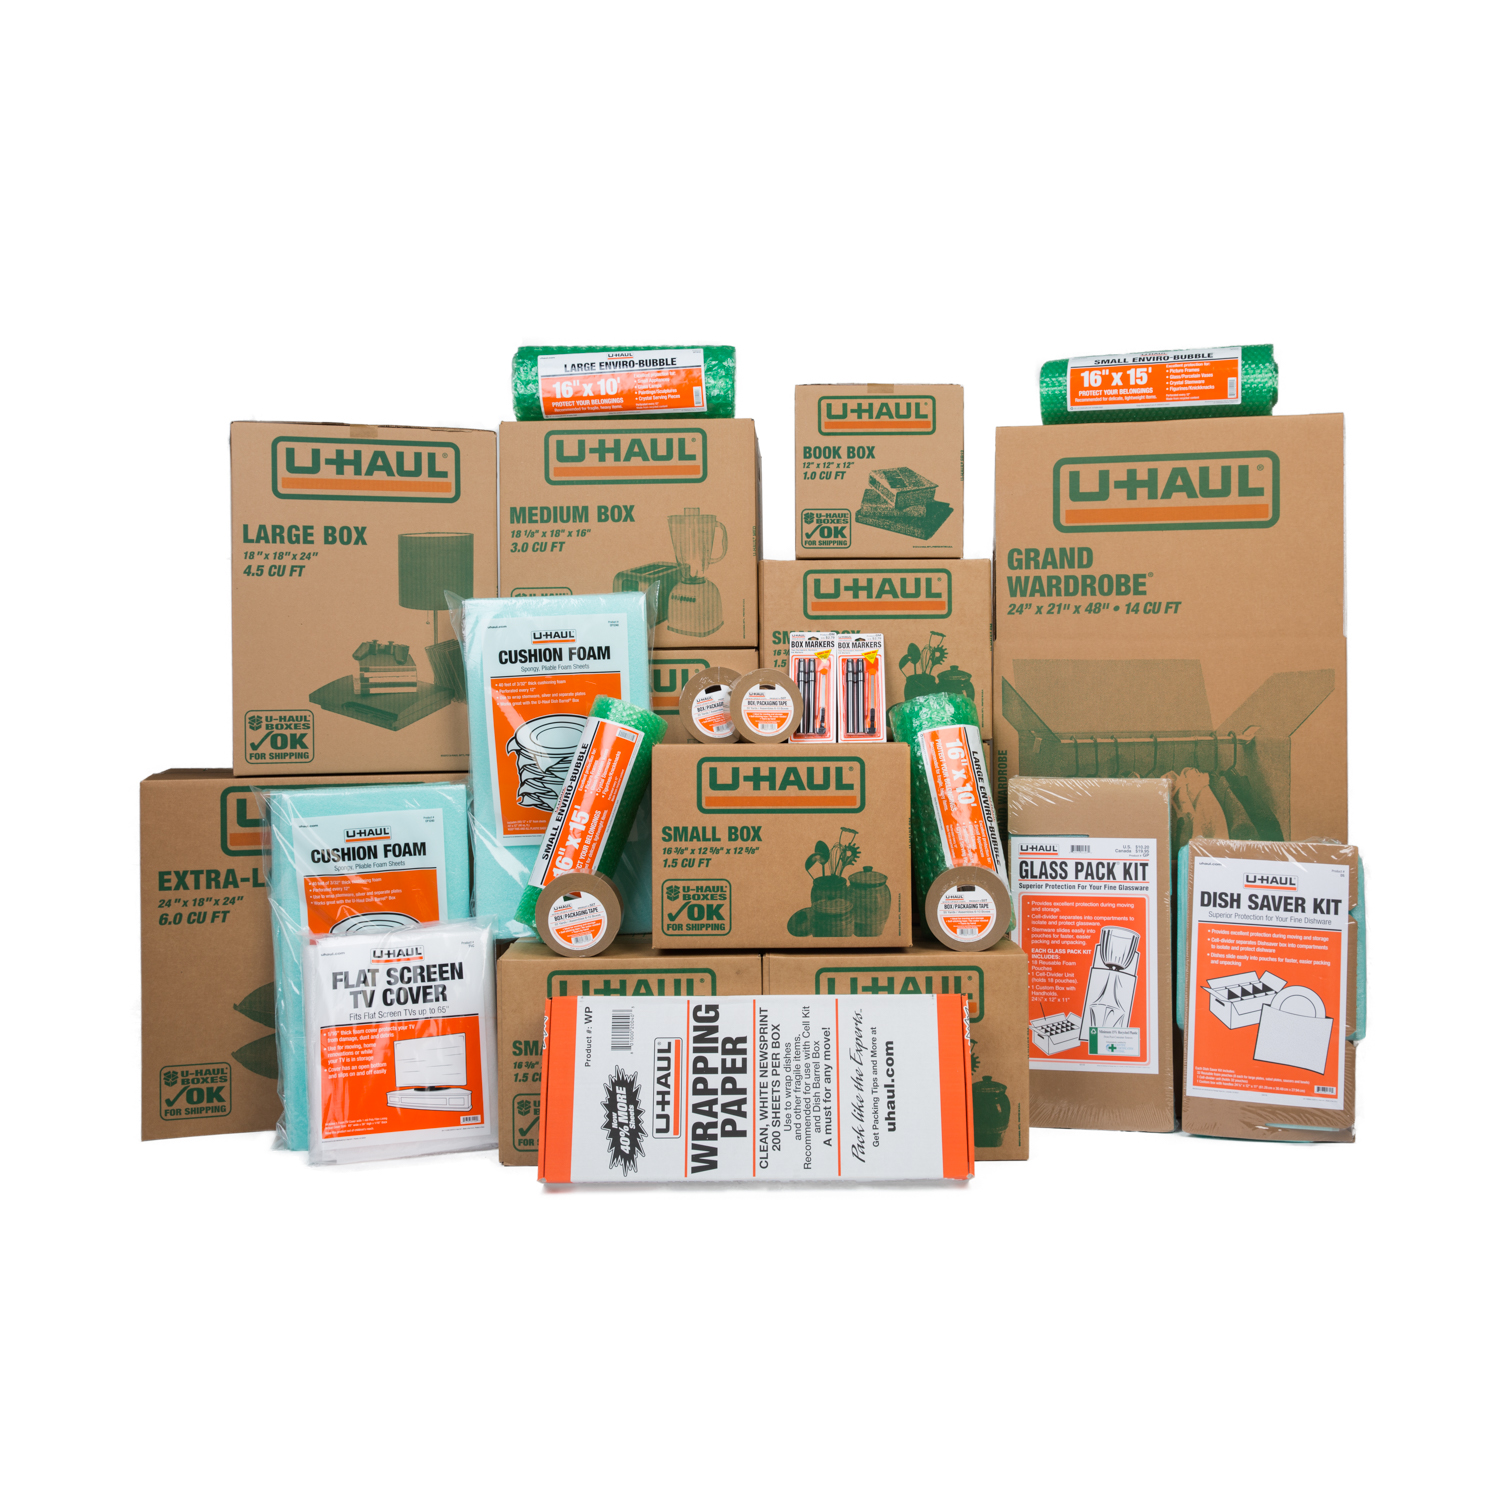 Wardrobe Boxes Uhaul: U-Haul: Moving Supplies: 3-4 Bedroom Household Kit®